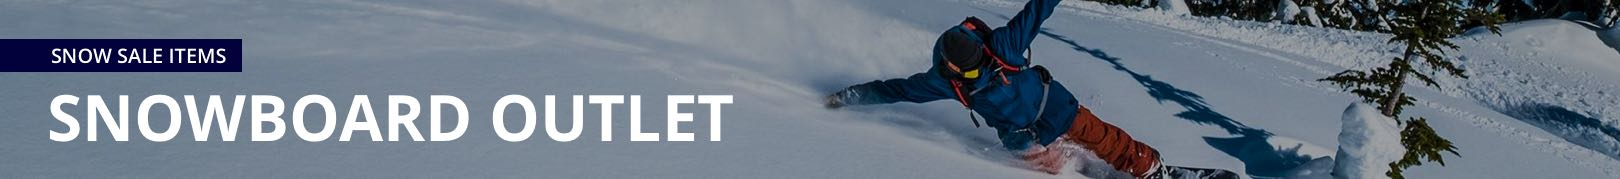 Snowboard outlet - sale snowboarding gear - boards, boots, bindings, outerwear, jackets, pants, tools, traction and accessories - buy online